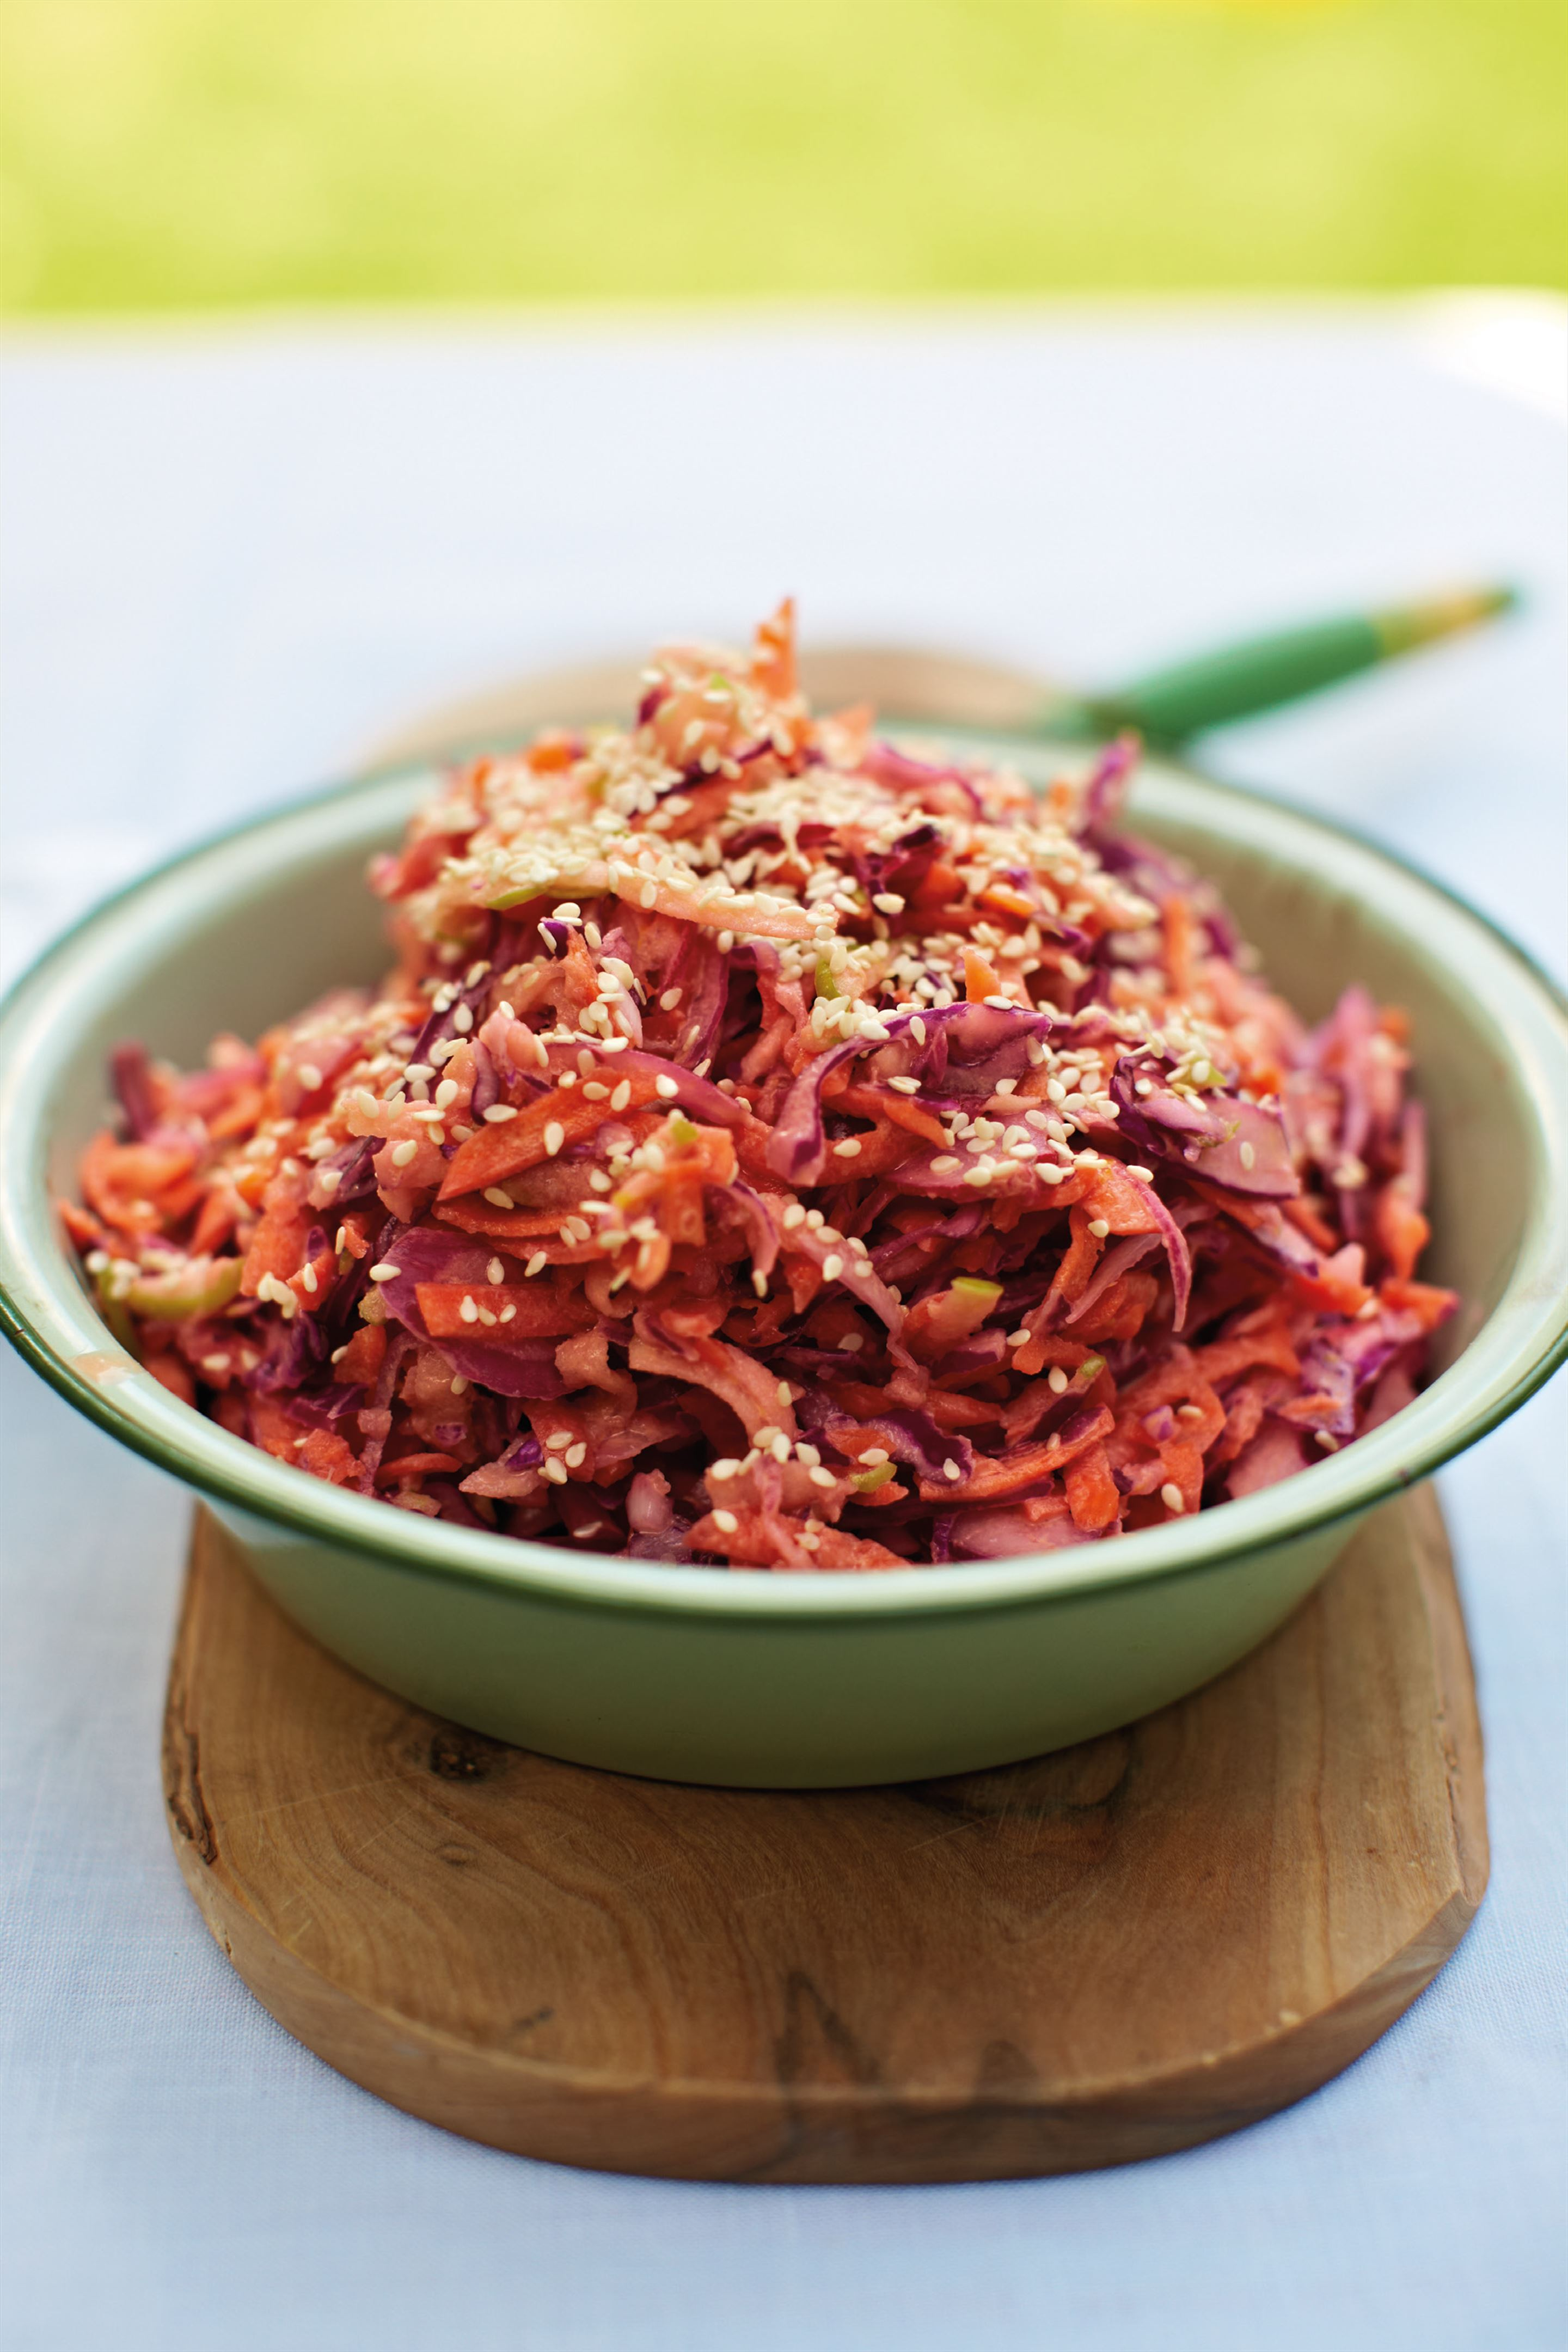 Burger relish style coleslaw